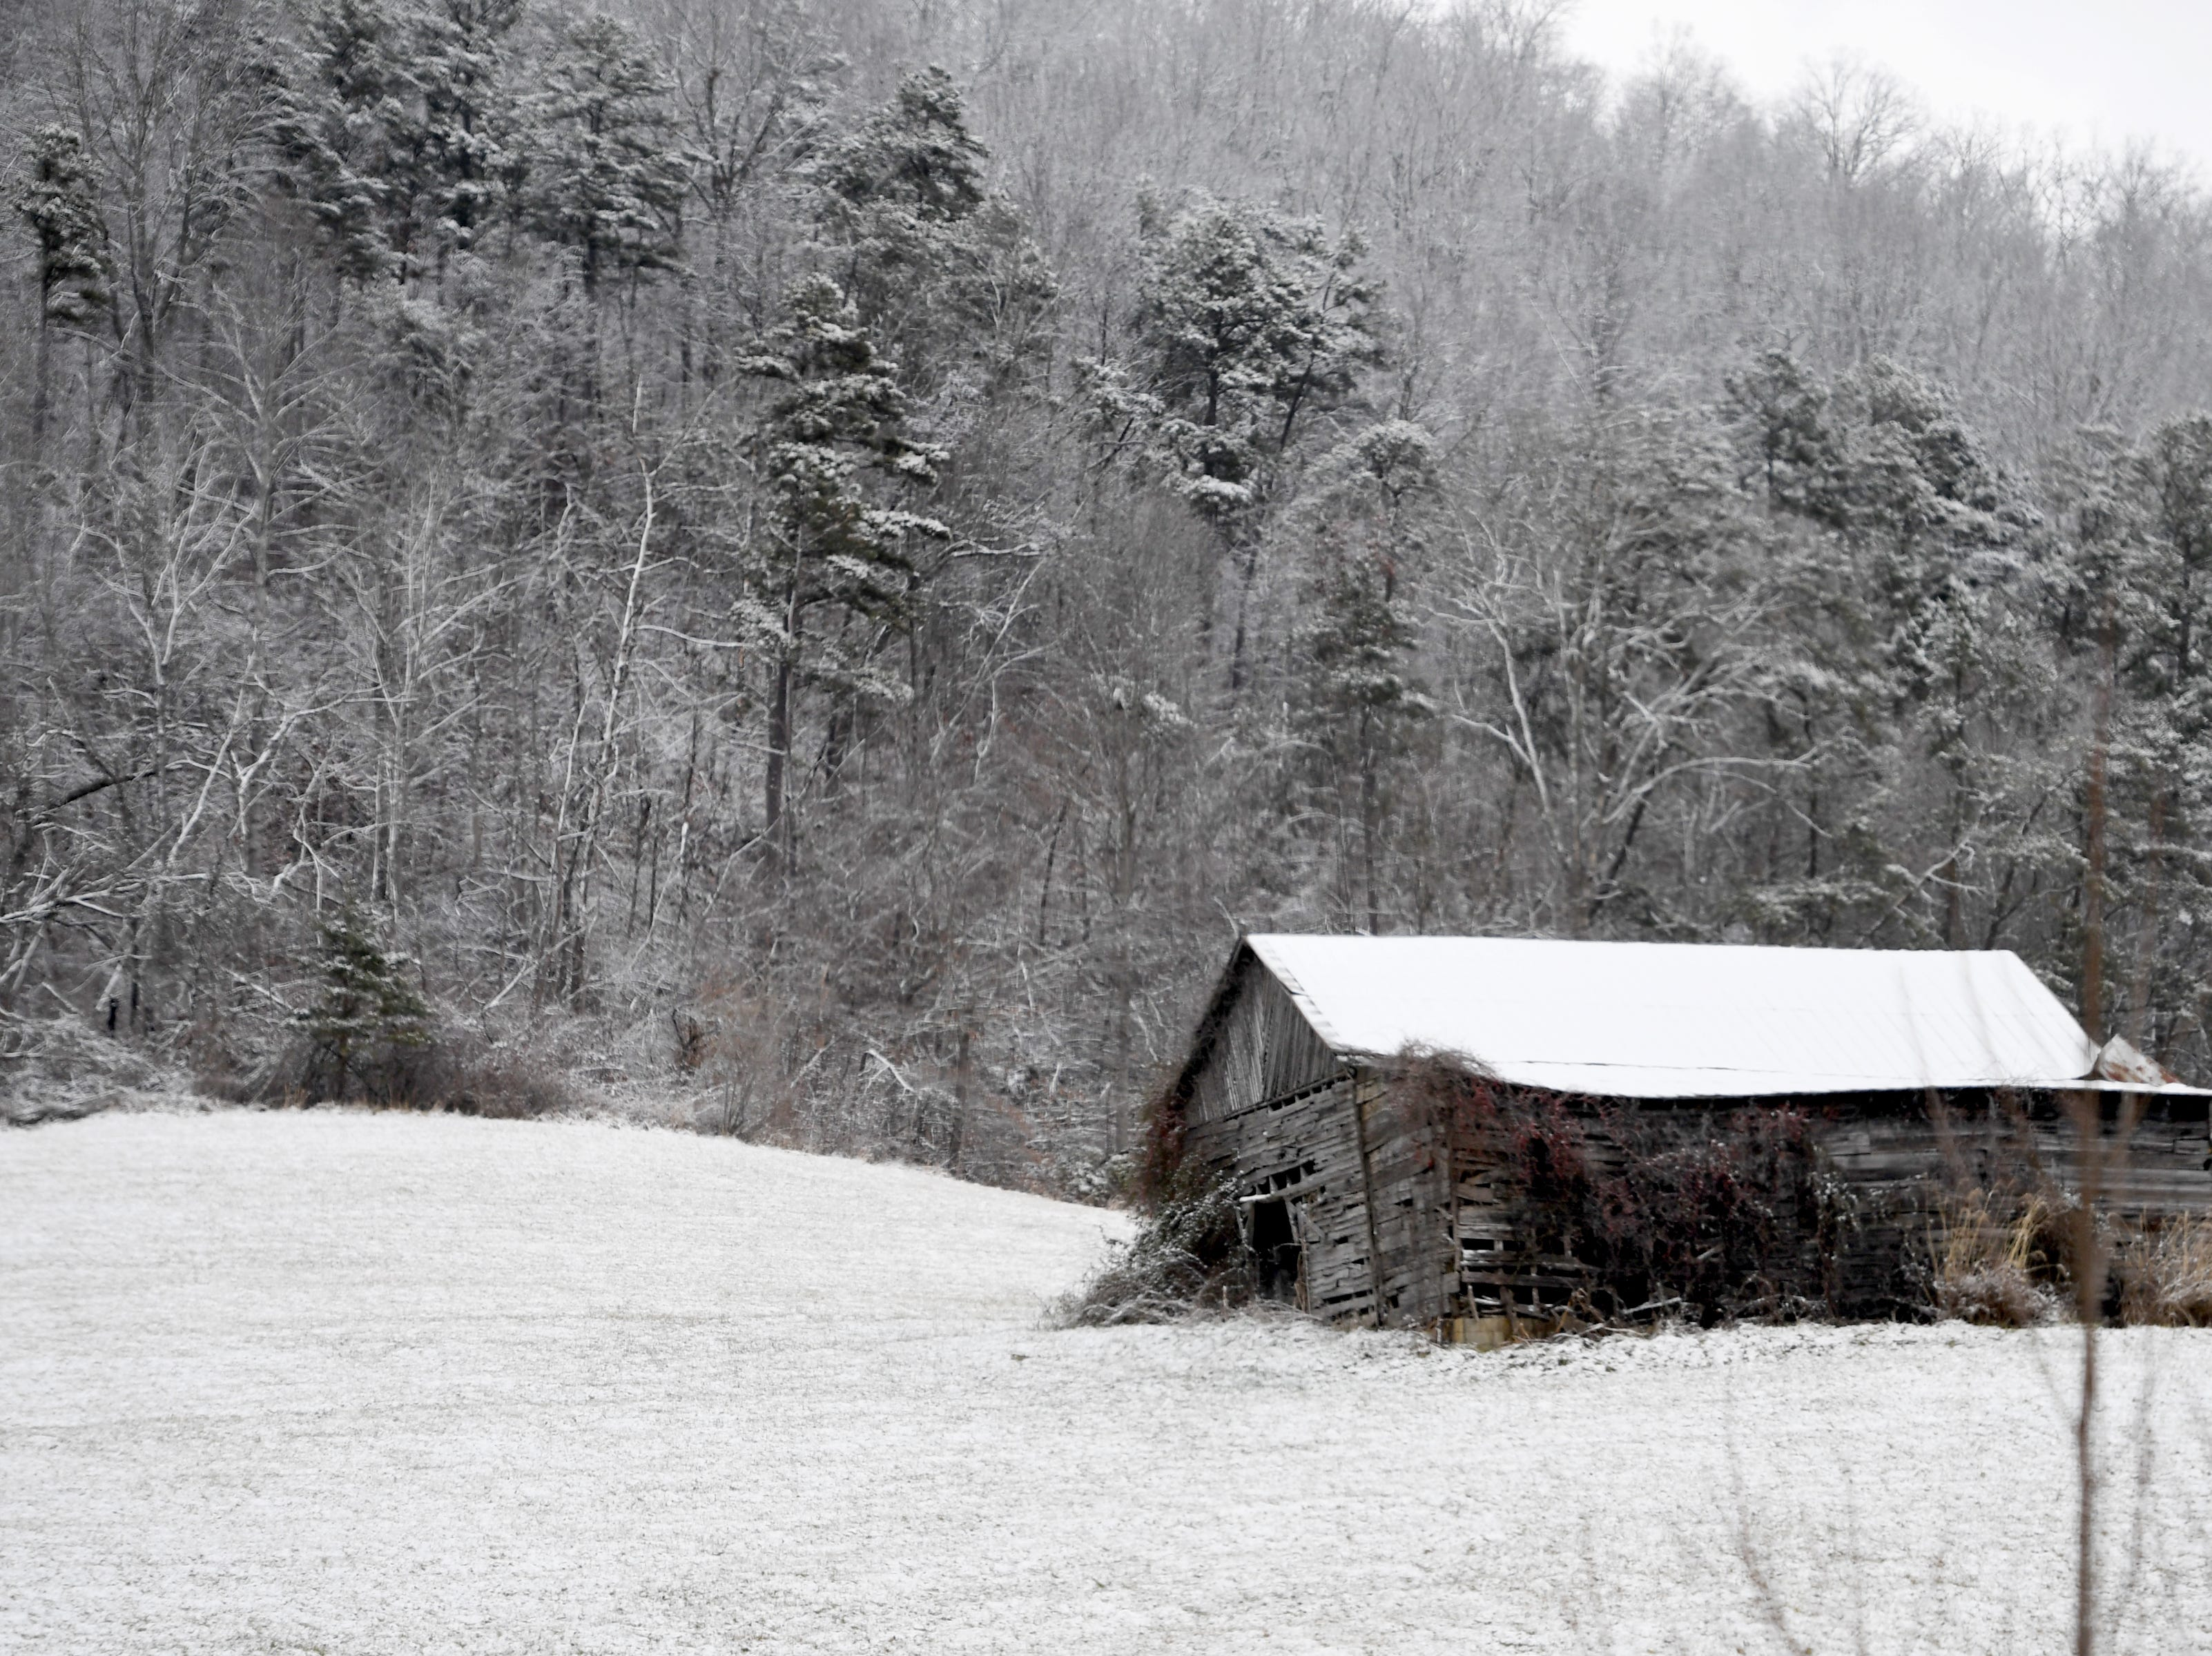 Northern Buncombe County, near Barnardsville, was blanketed in a thin layer of snow on Jan. 29, 2019.